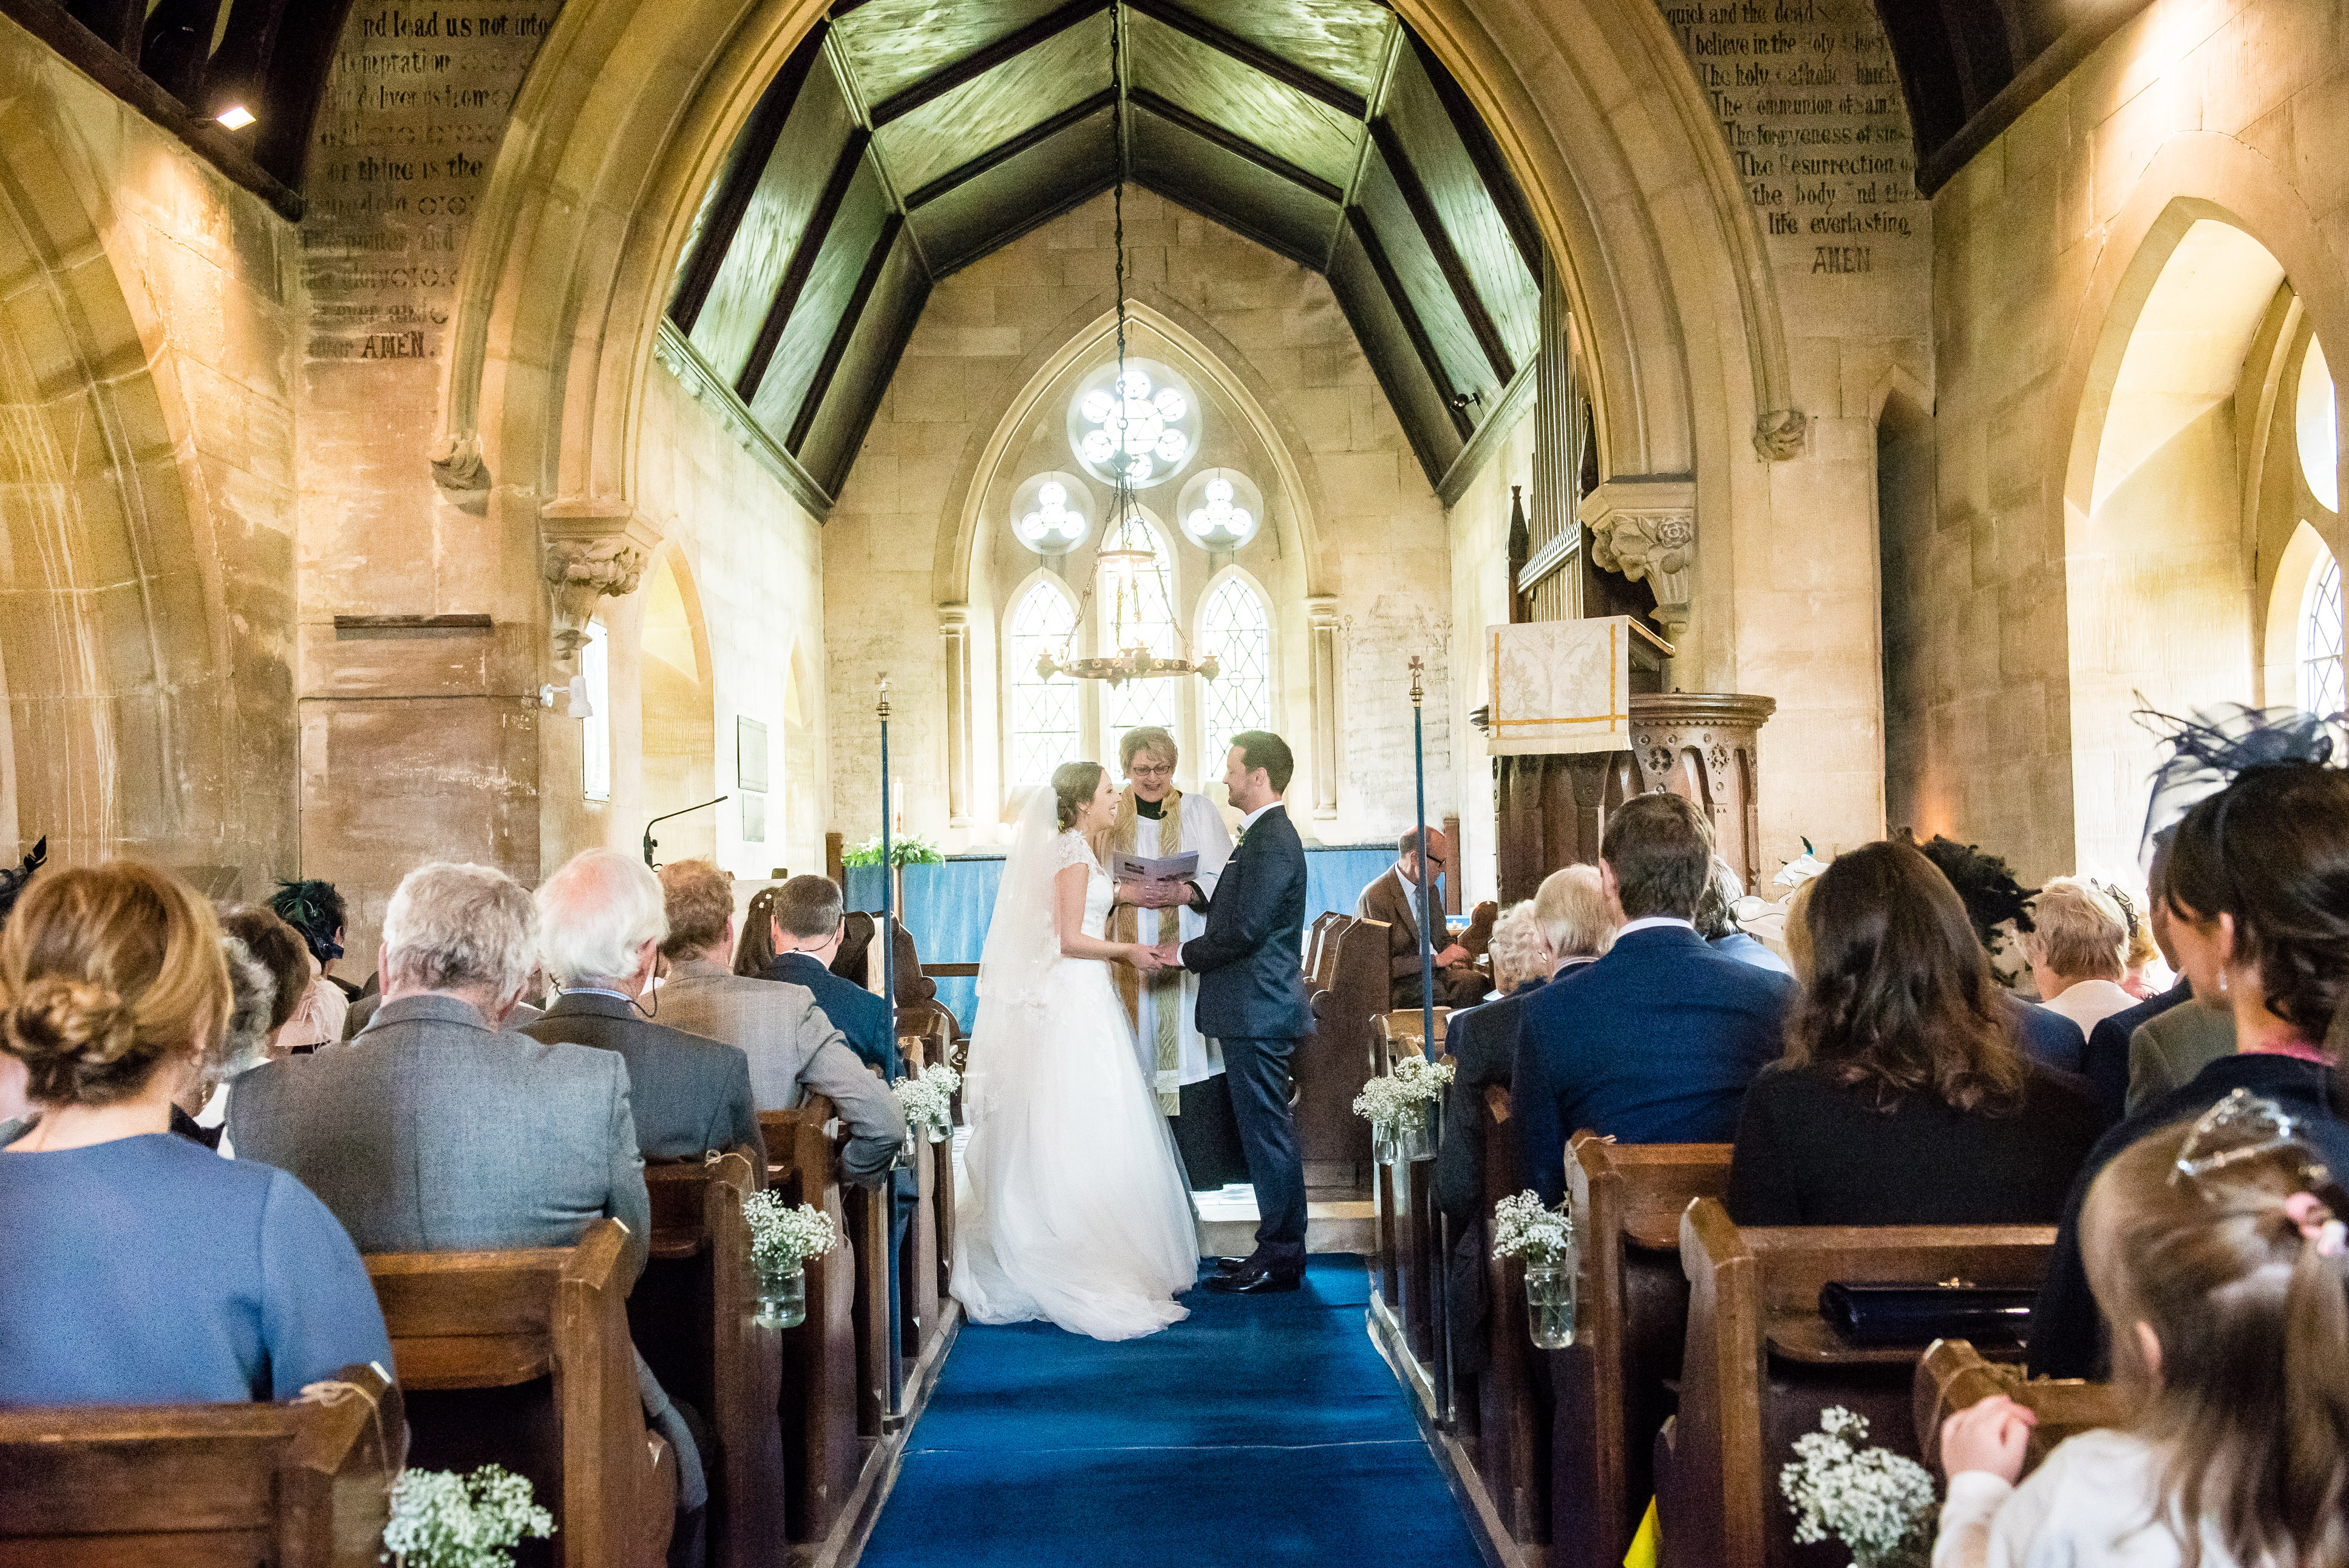 Marriage Registration Changes The